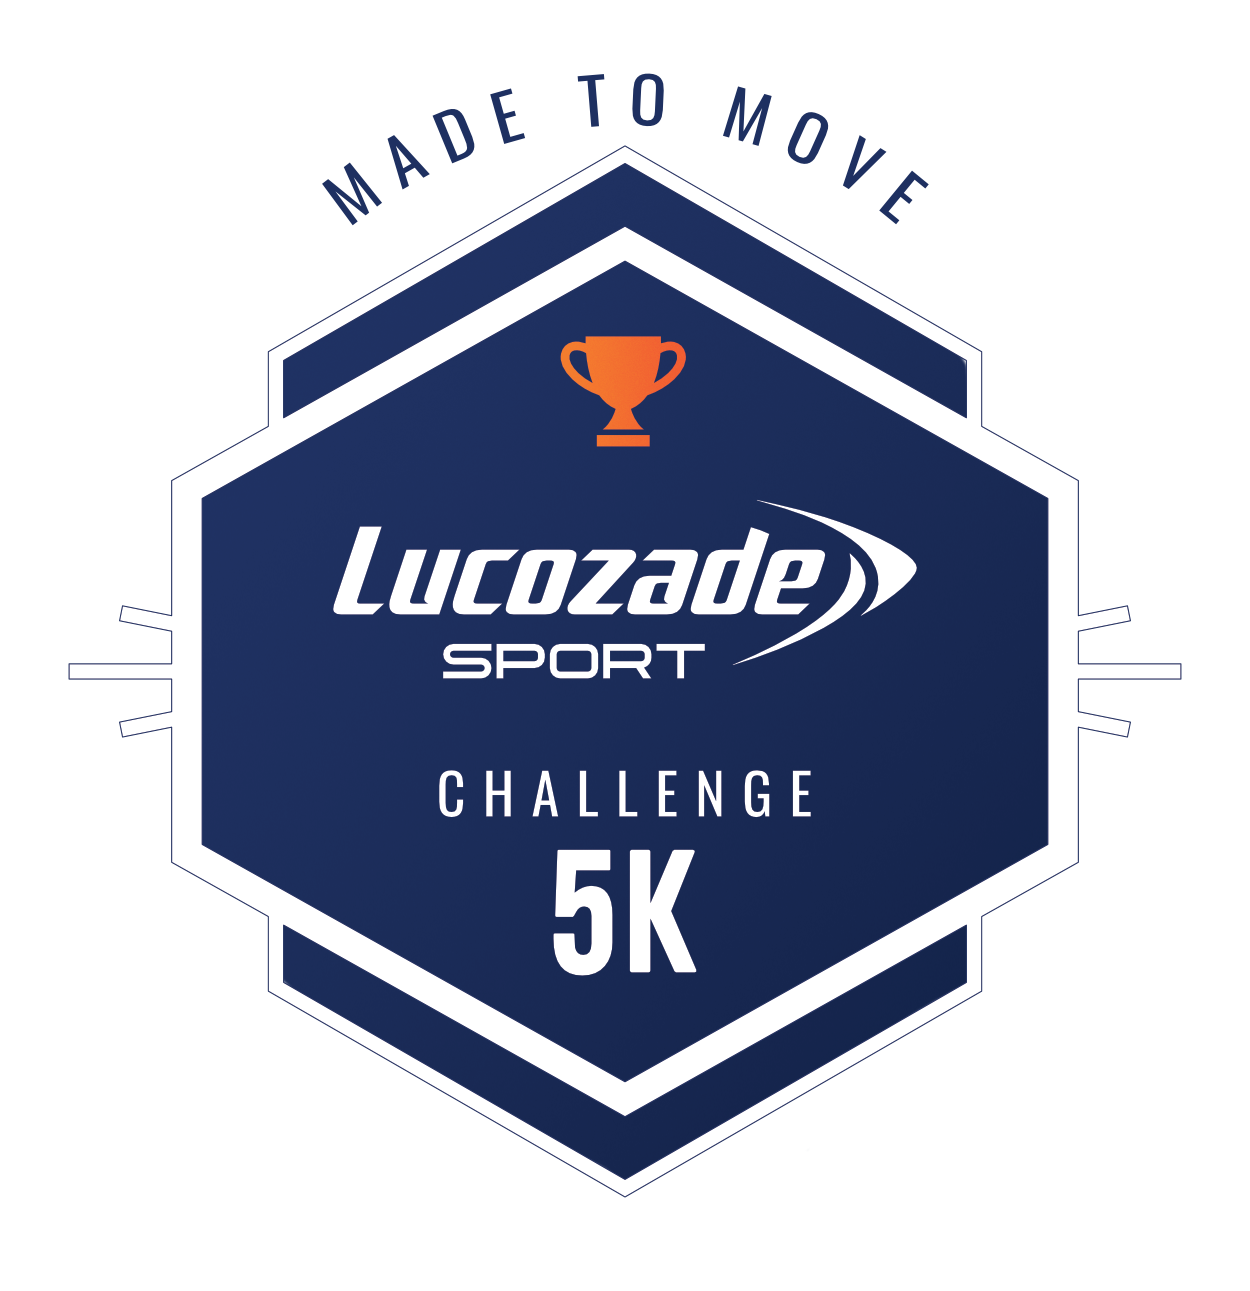 The Lucozade Sport #MadeToMove Challenge logo